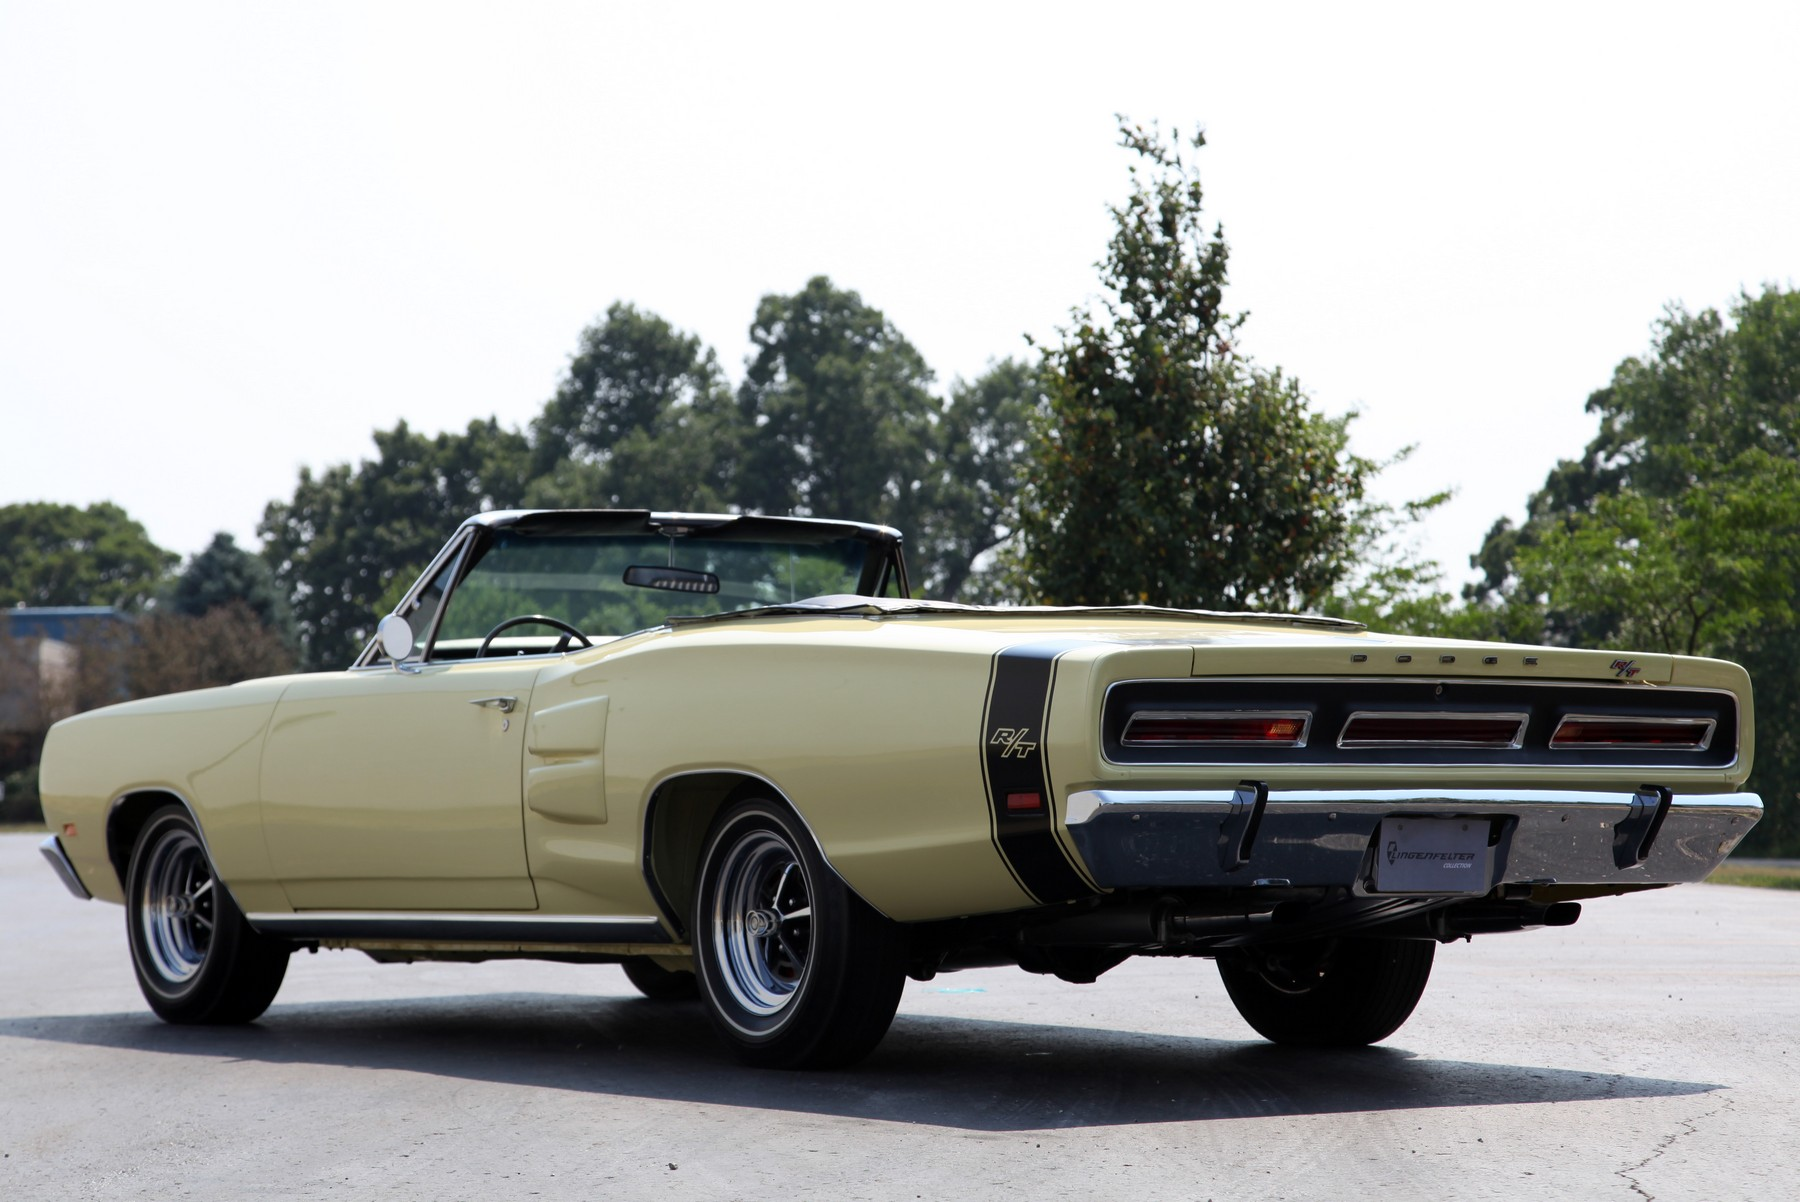 69 Coronet Wiring Diagram Library 66 Mopar Wiper 1969 Dodge Hemi Rt Convertible Wallpaper And Background Rh Wall Alphacoders Com